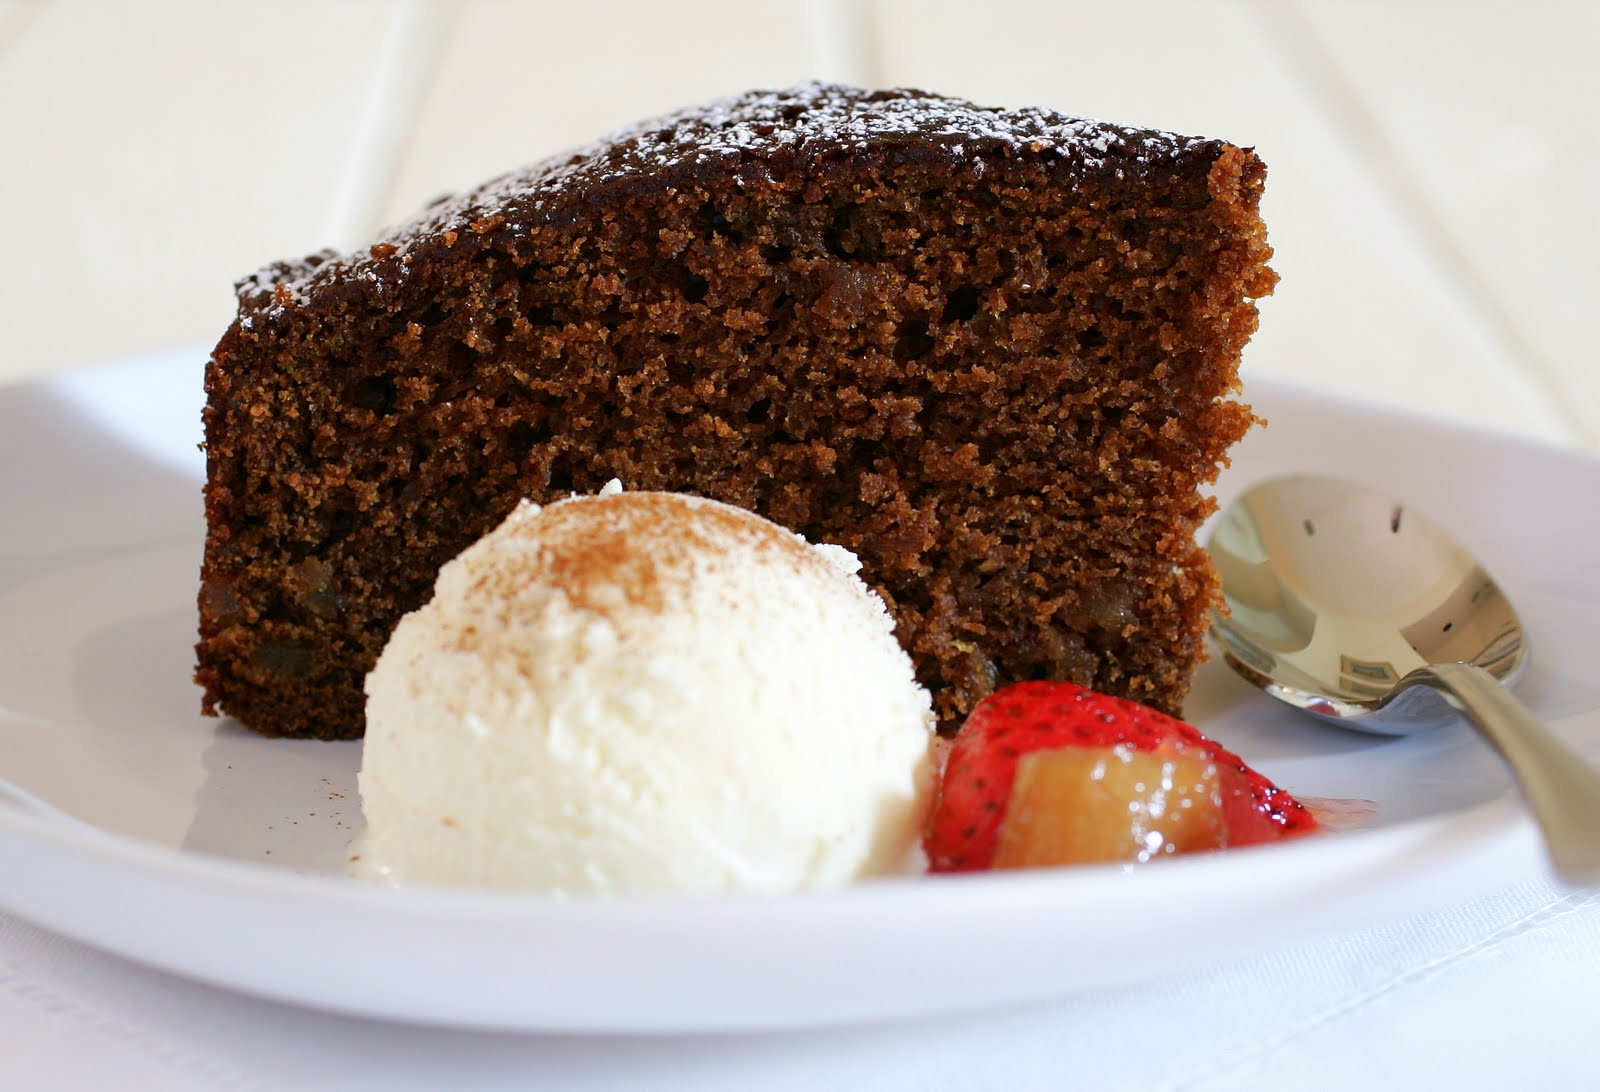 ... Sweet Dreams: Fresh Ginger Spice Cake: Mistakes, I've Made a Few